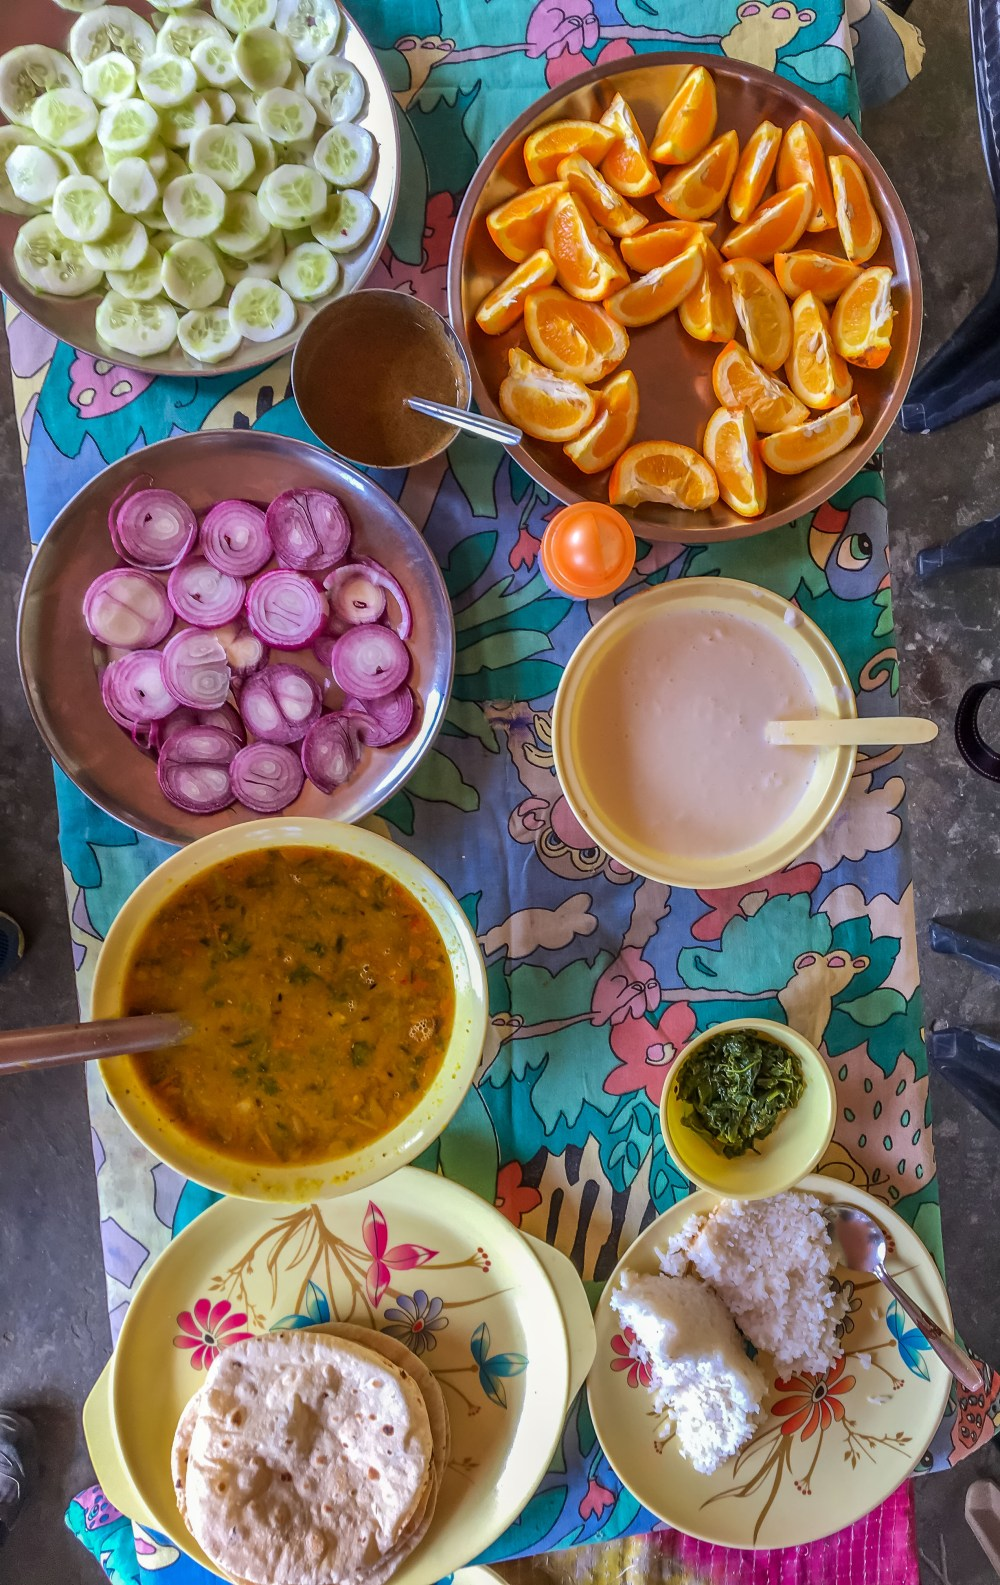 Garhwal Food